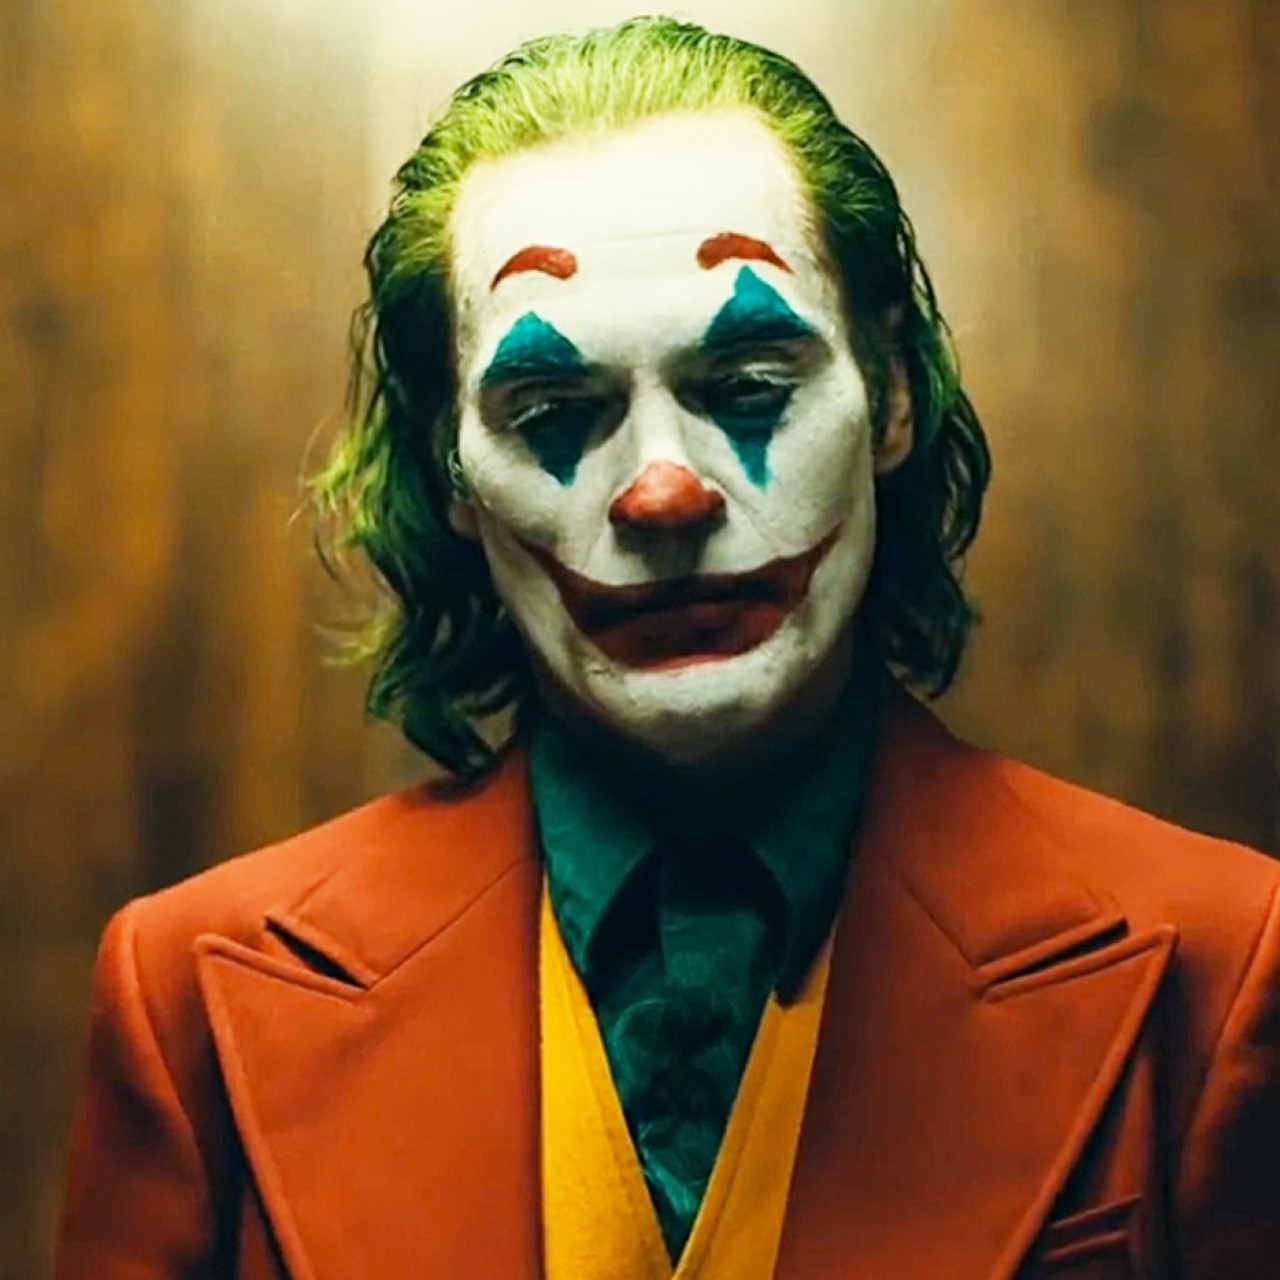 Joker movie trailer has gritty Martin Scorsese look – it